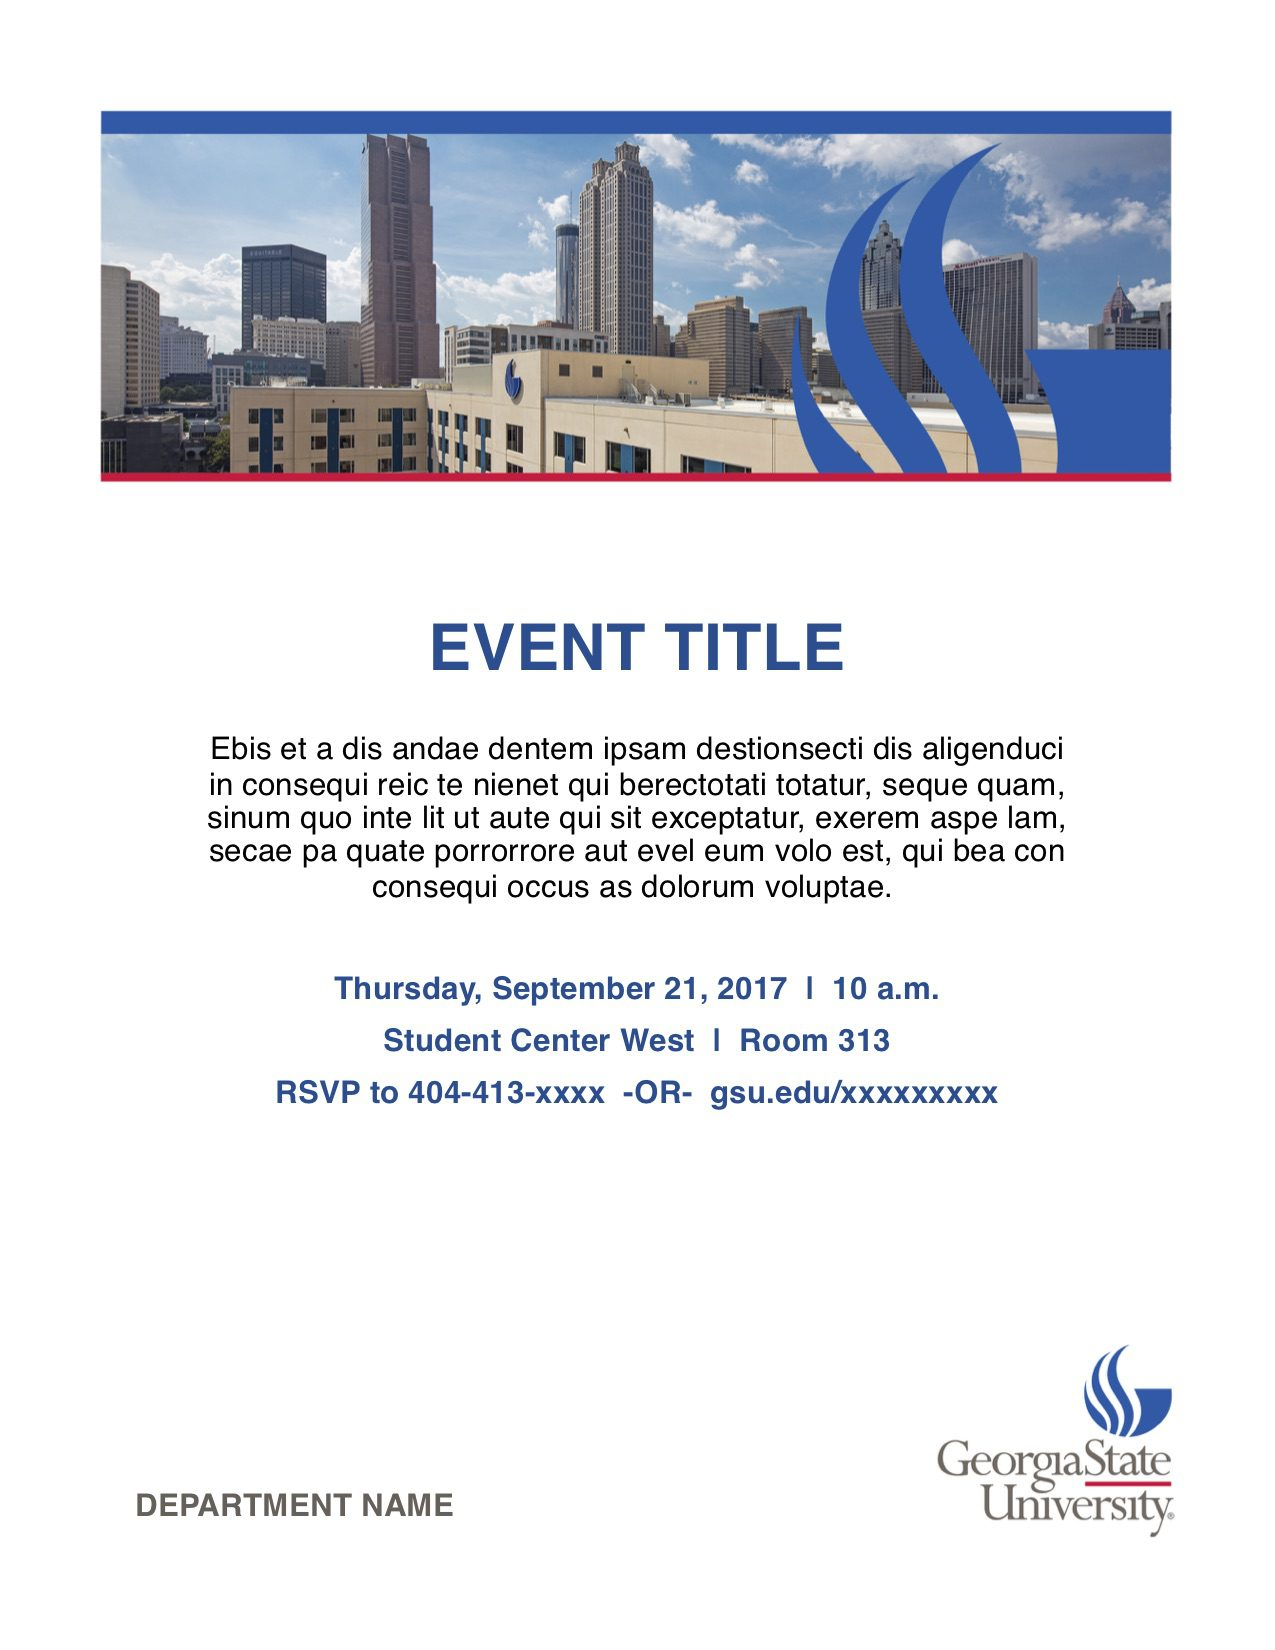 Sample Event Flyer with image at top, Title, text and details below